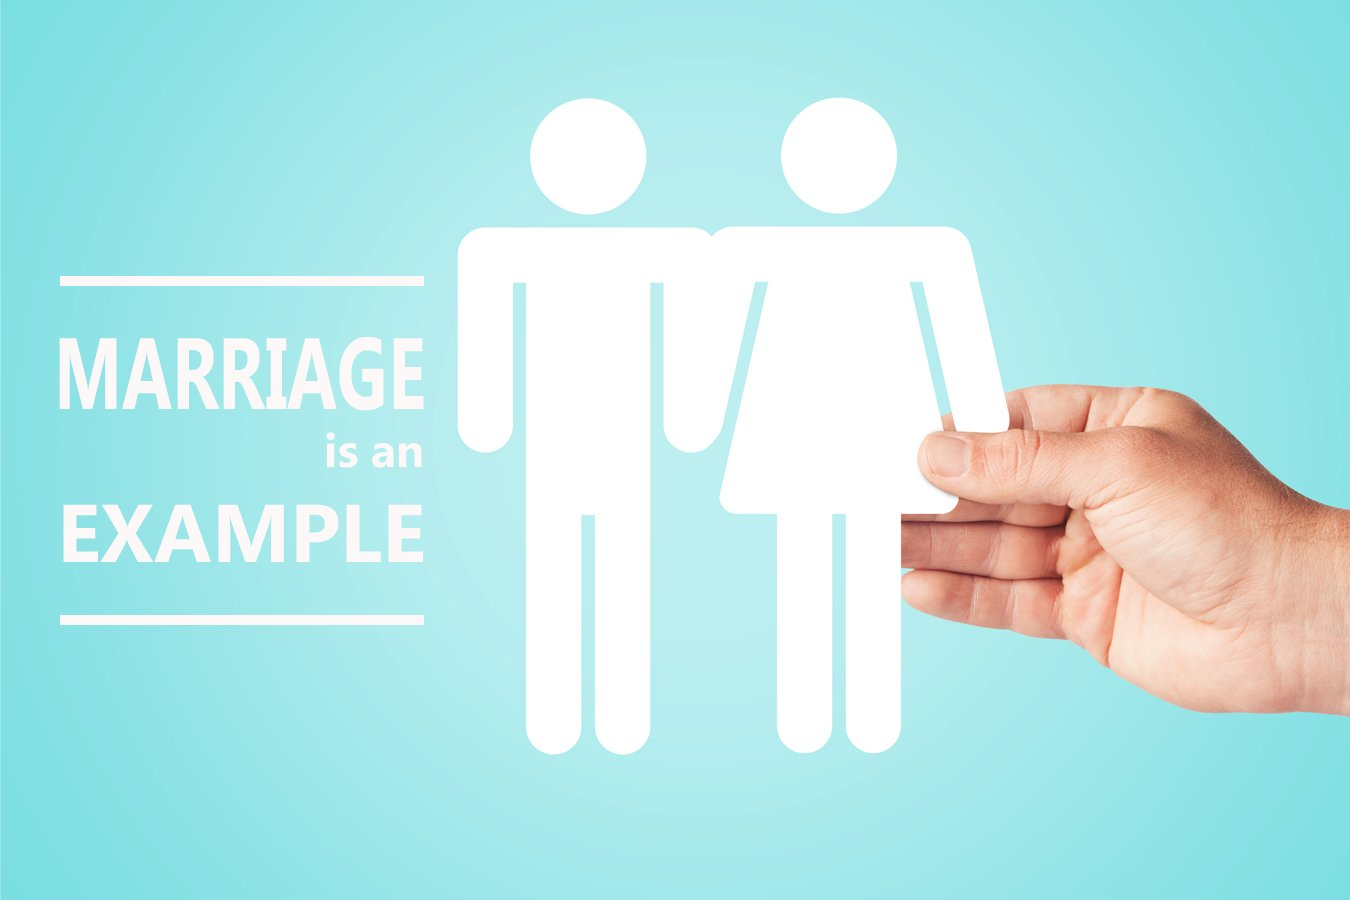 Marriage is an Example